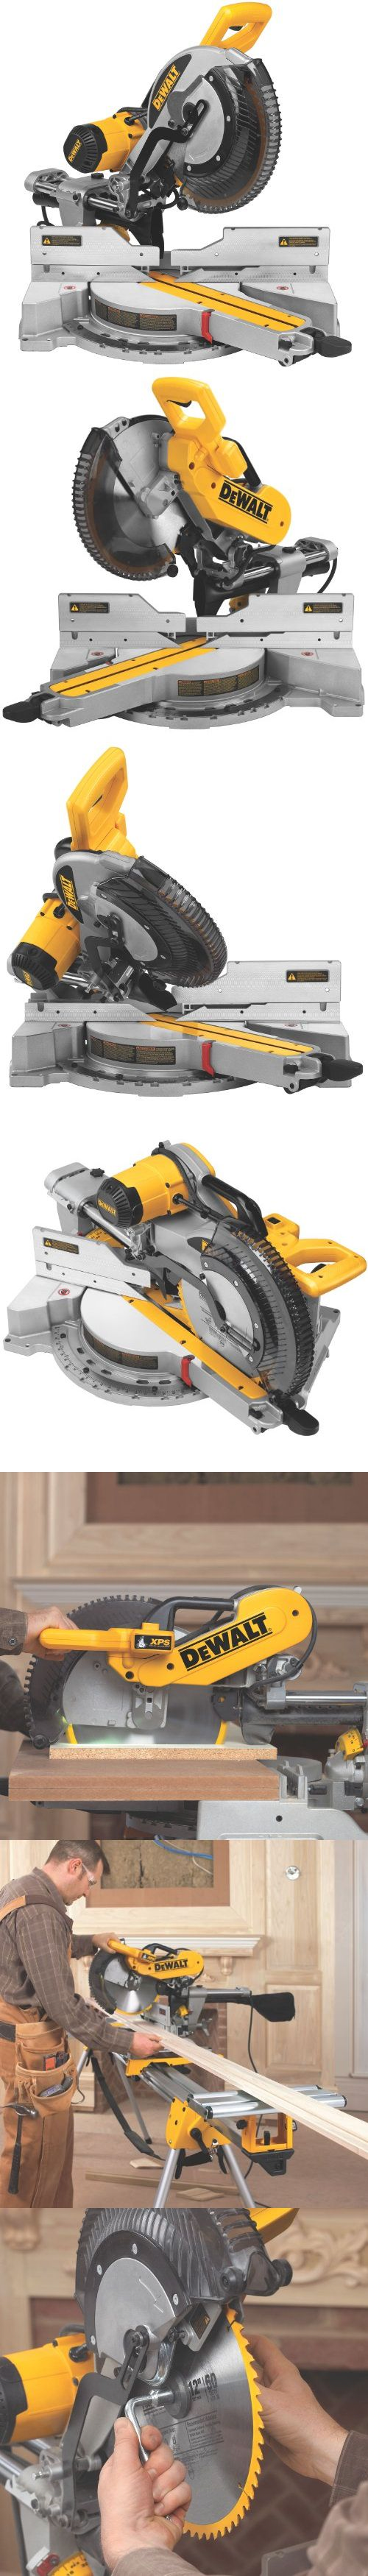 DEWALT DWS780 12-Inch Double Bevel Sliding Compound Miter Saw - The DEWALT DWS780 12-inch double bevel sliding compound miter saw expertly walks the line between the rugged durability and fine precision that professionals need on the job site. From delicate woodwo... - Miter Saws - Tools & Hardware - $509.99